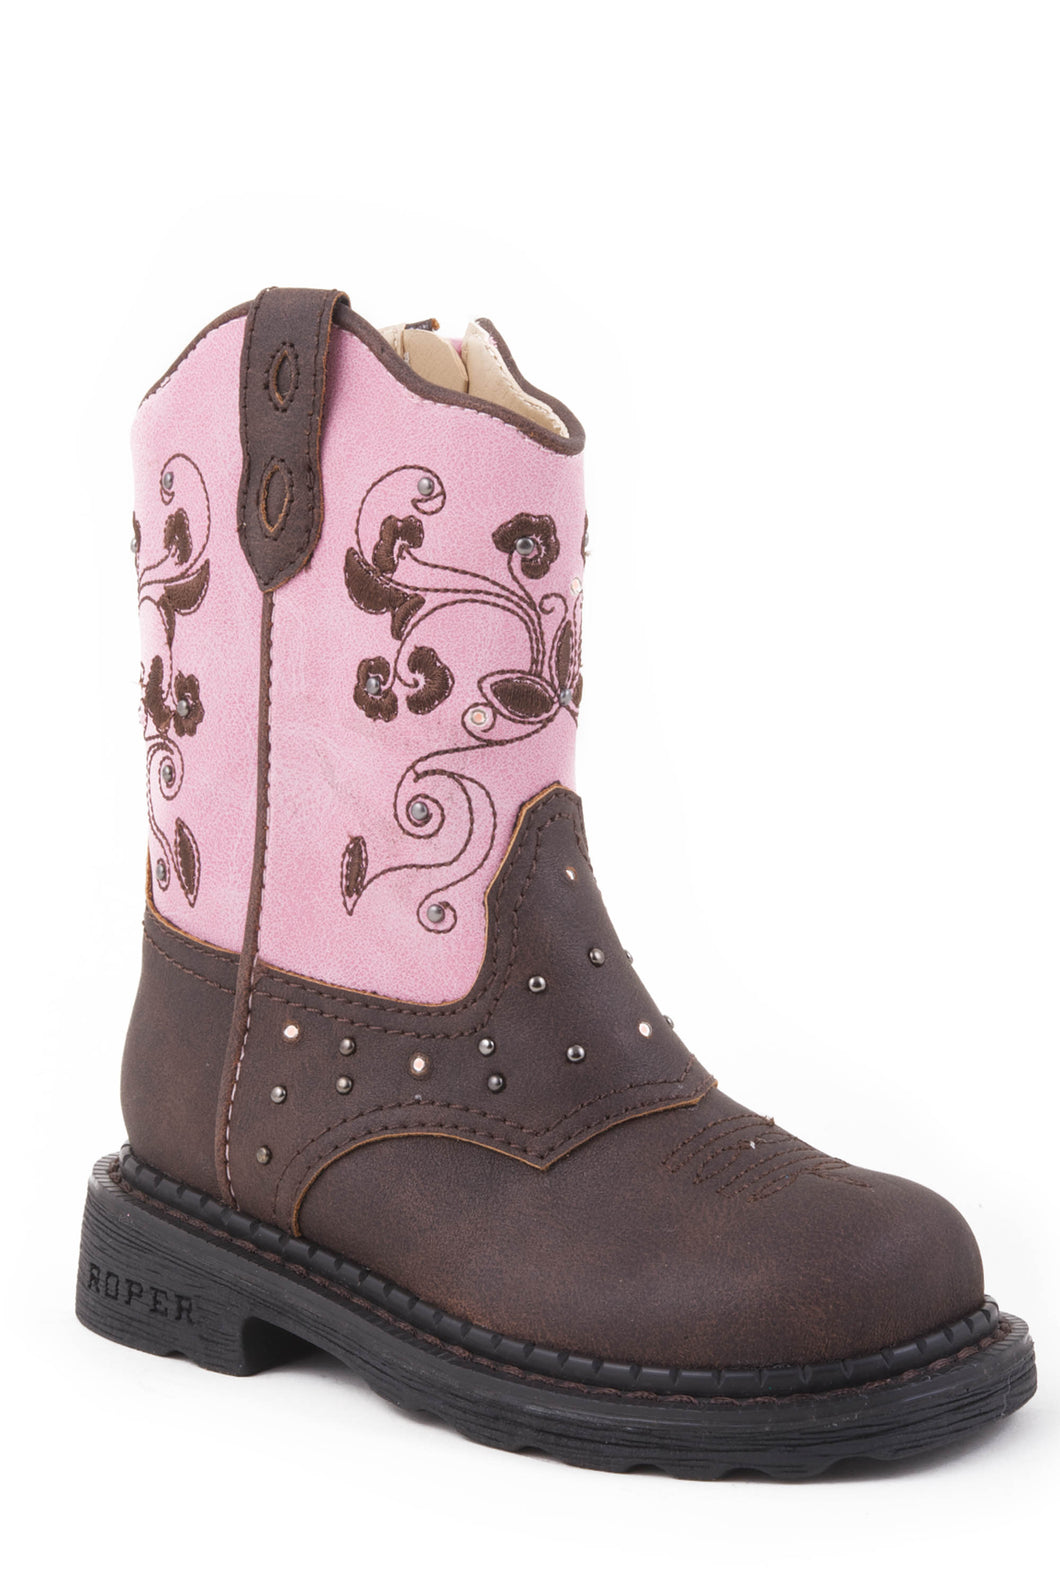 Saddle Light Boot Infant Boots Brown Vamppink Shaft Saddle Vamp